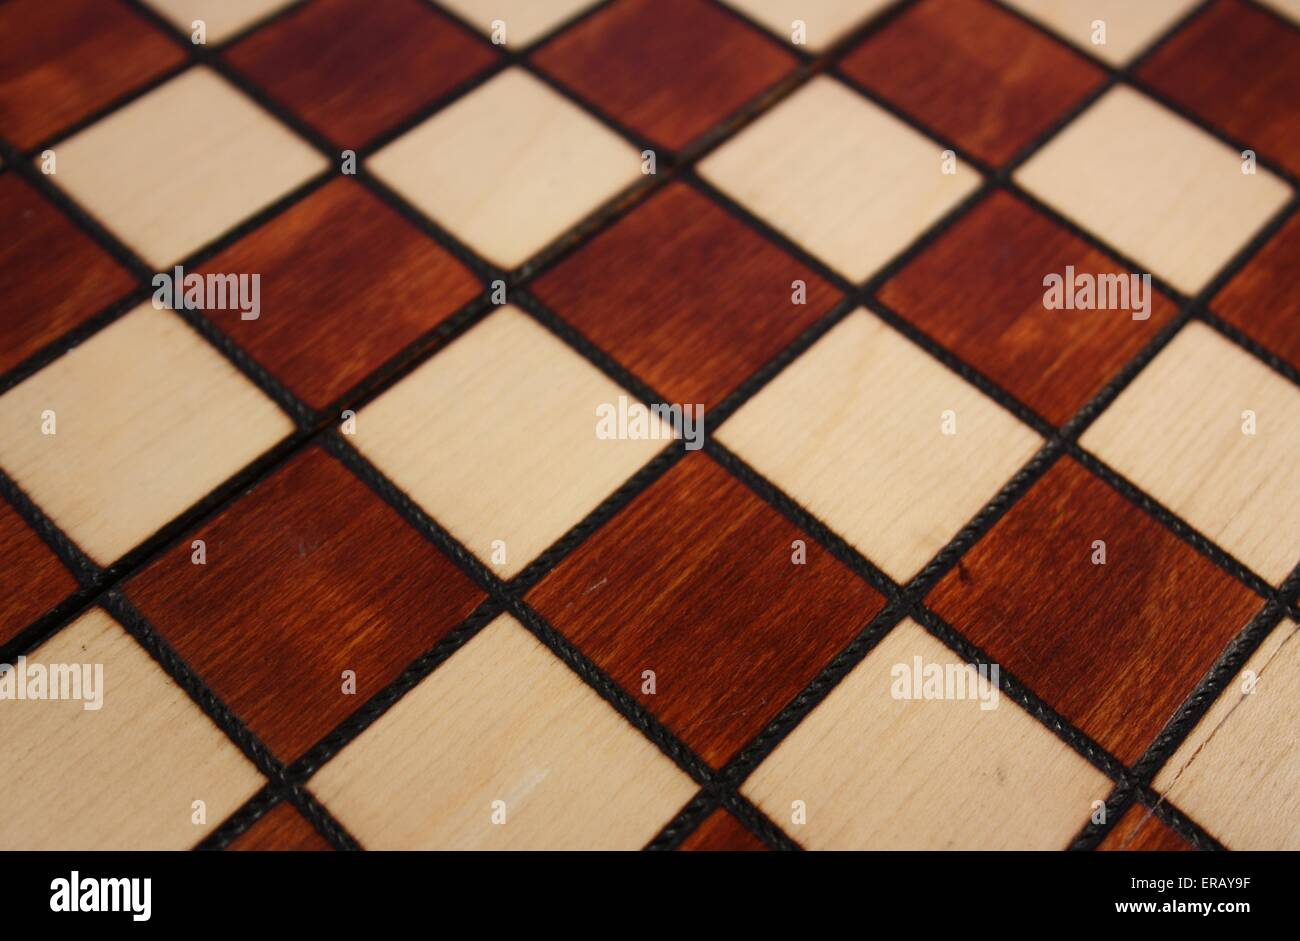 Background in a cage. Chessboard - Stock Image